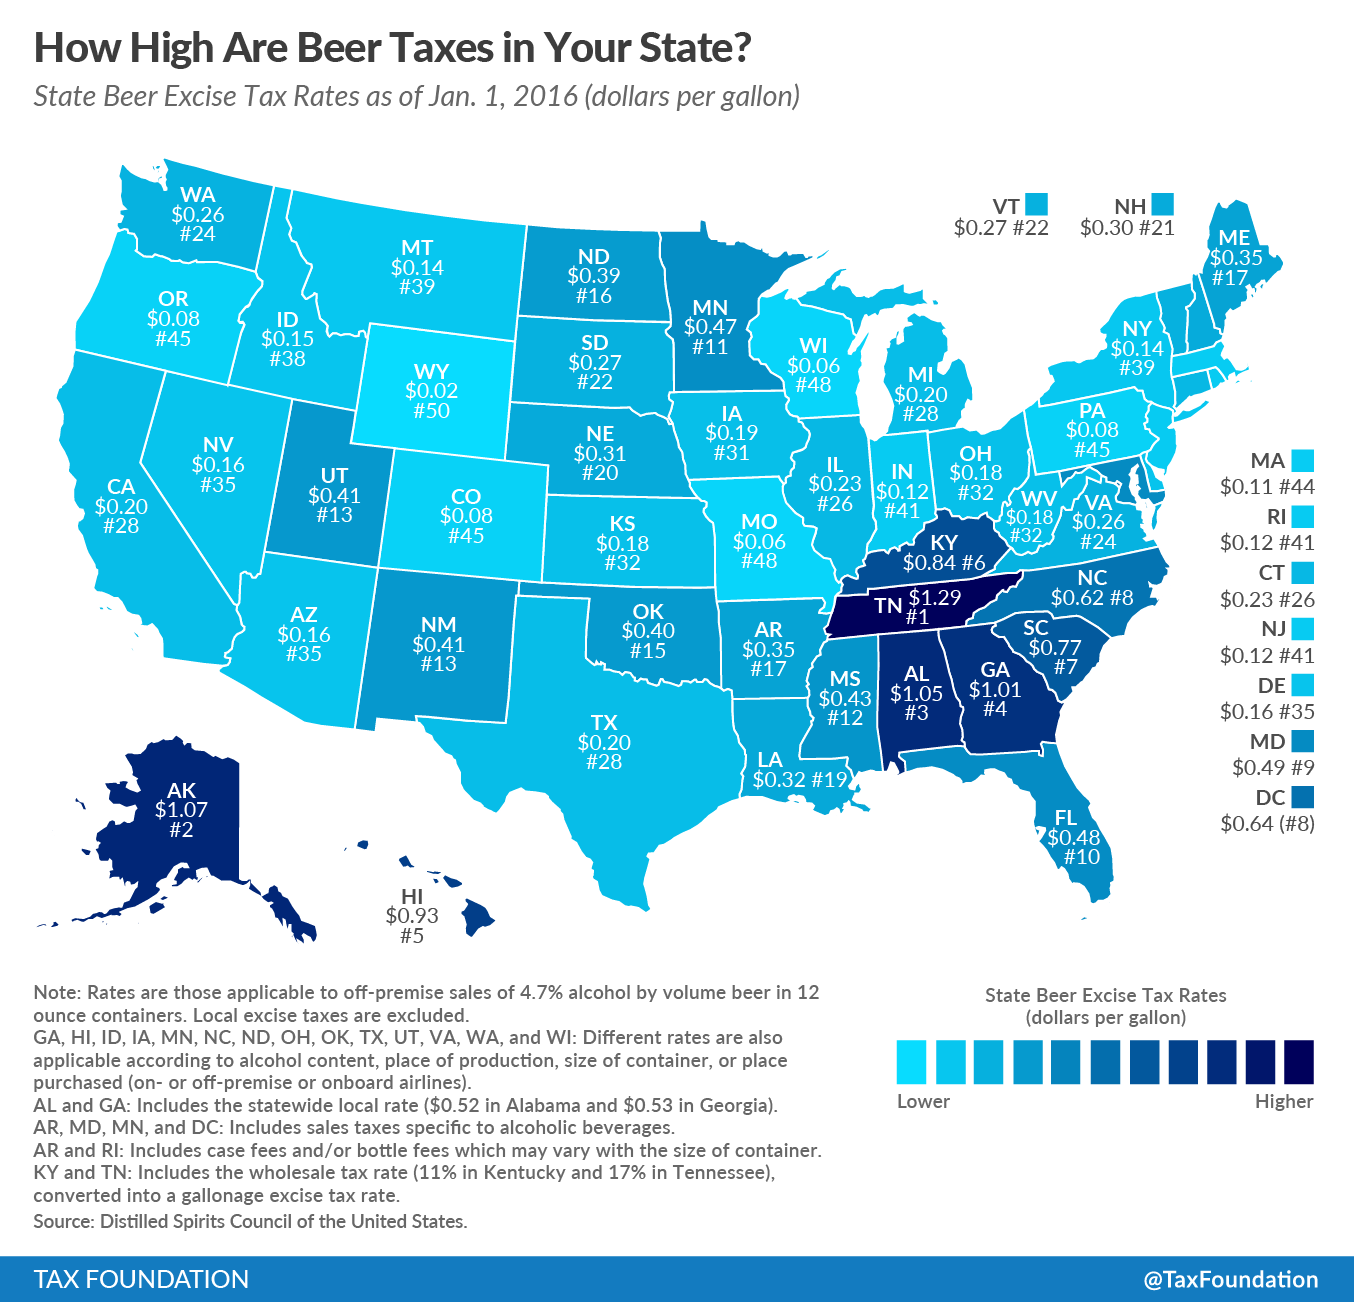 Tennessee Sales Tax Calculator >> How High Are Beer Taxes in Your State? | Tax Foundation